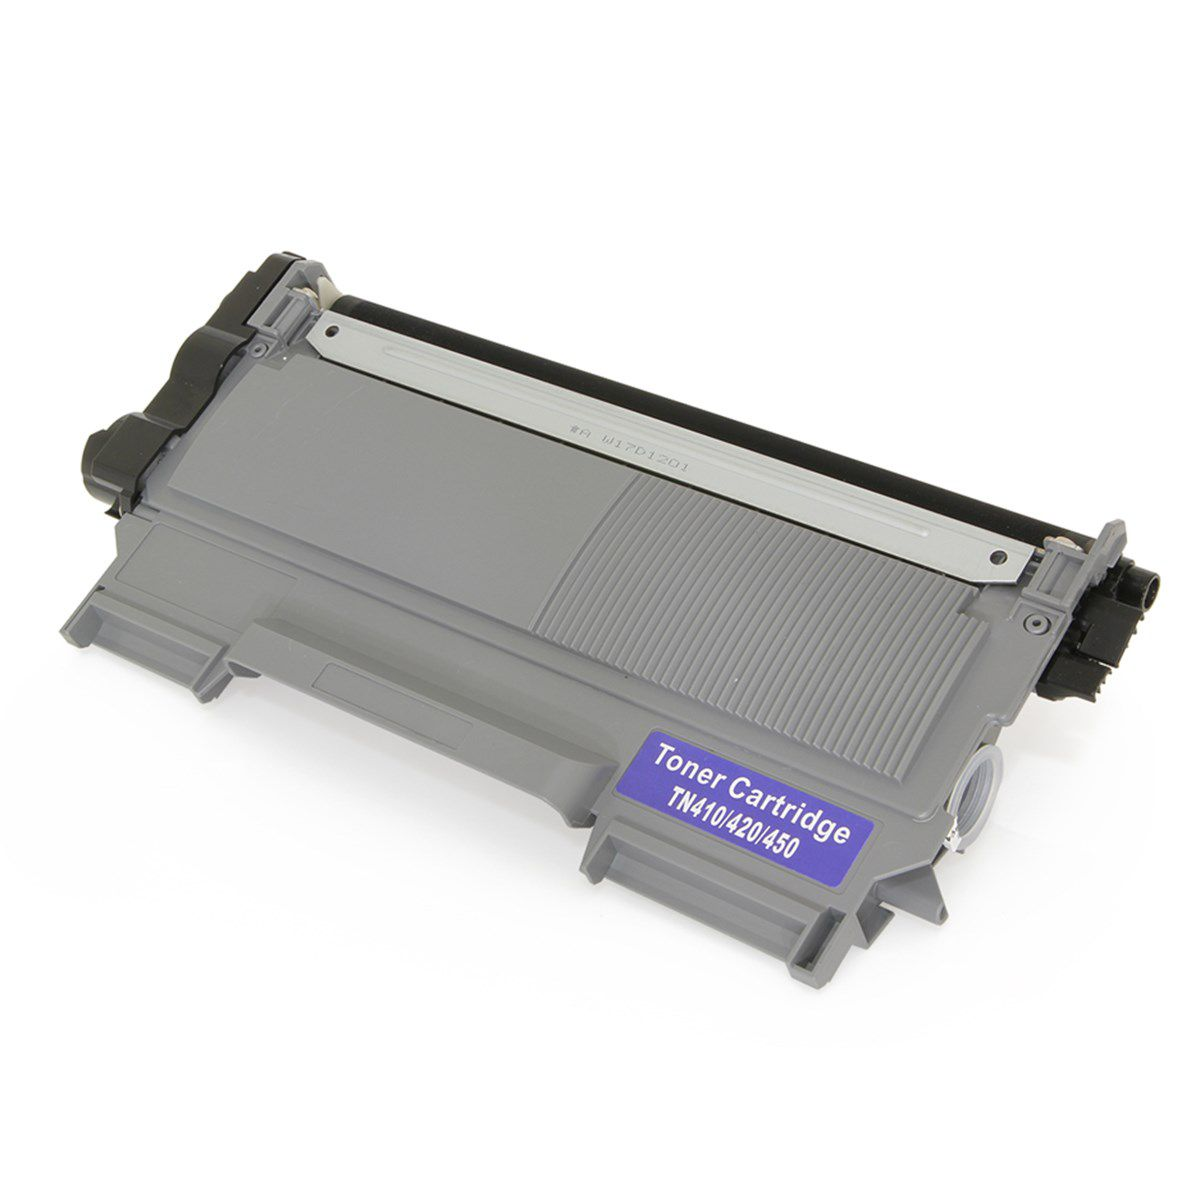 TONER COMPATIVEL BROTHER TN410/420/450 - BYQUALY